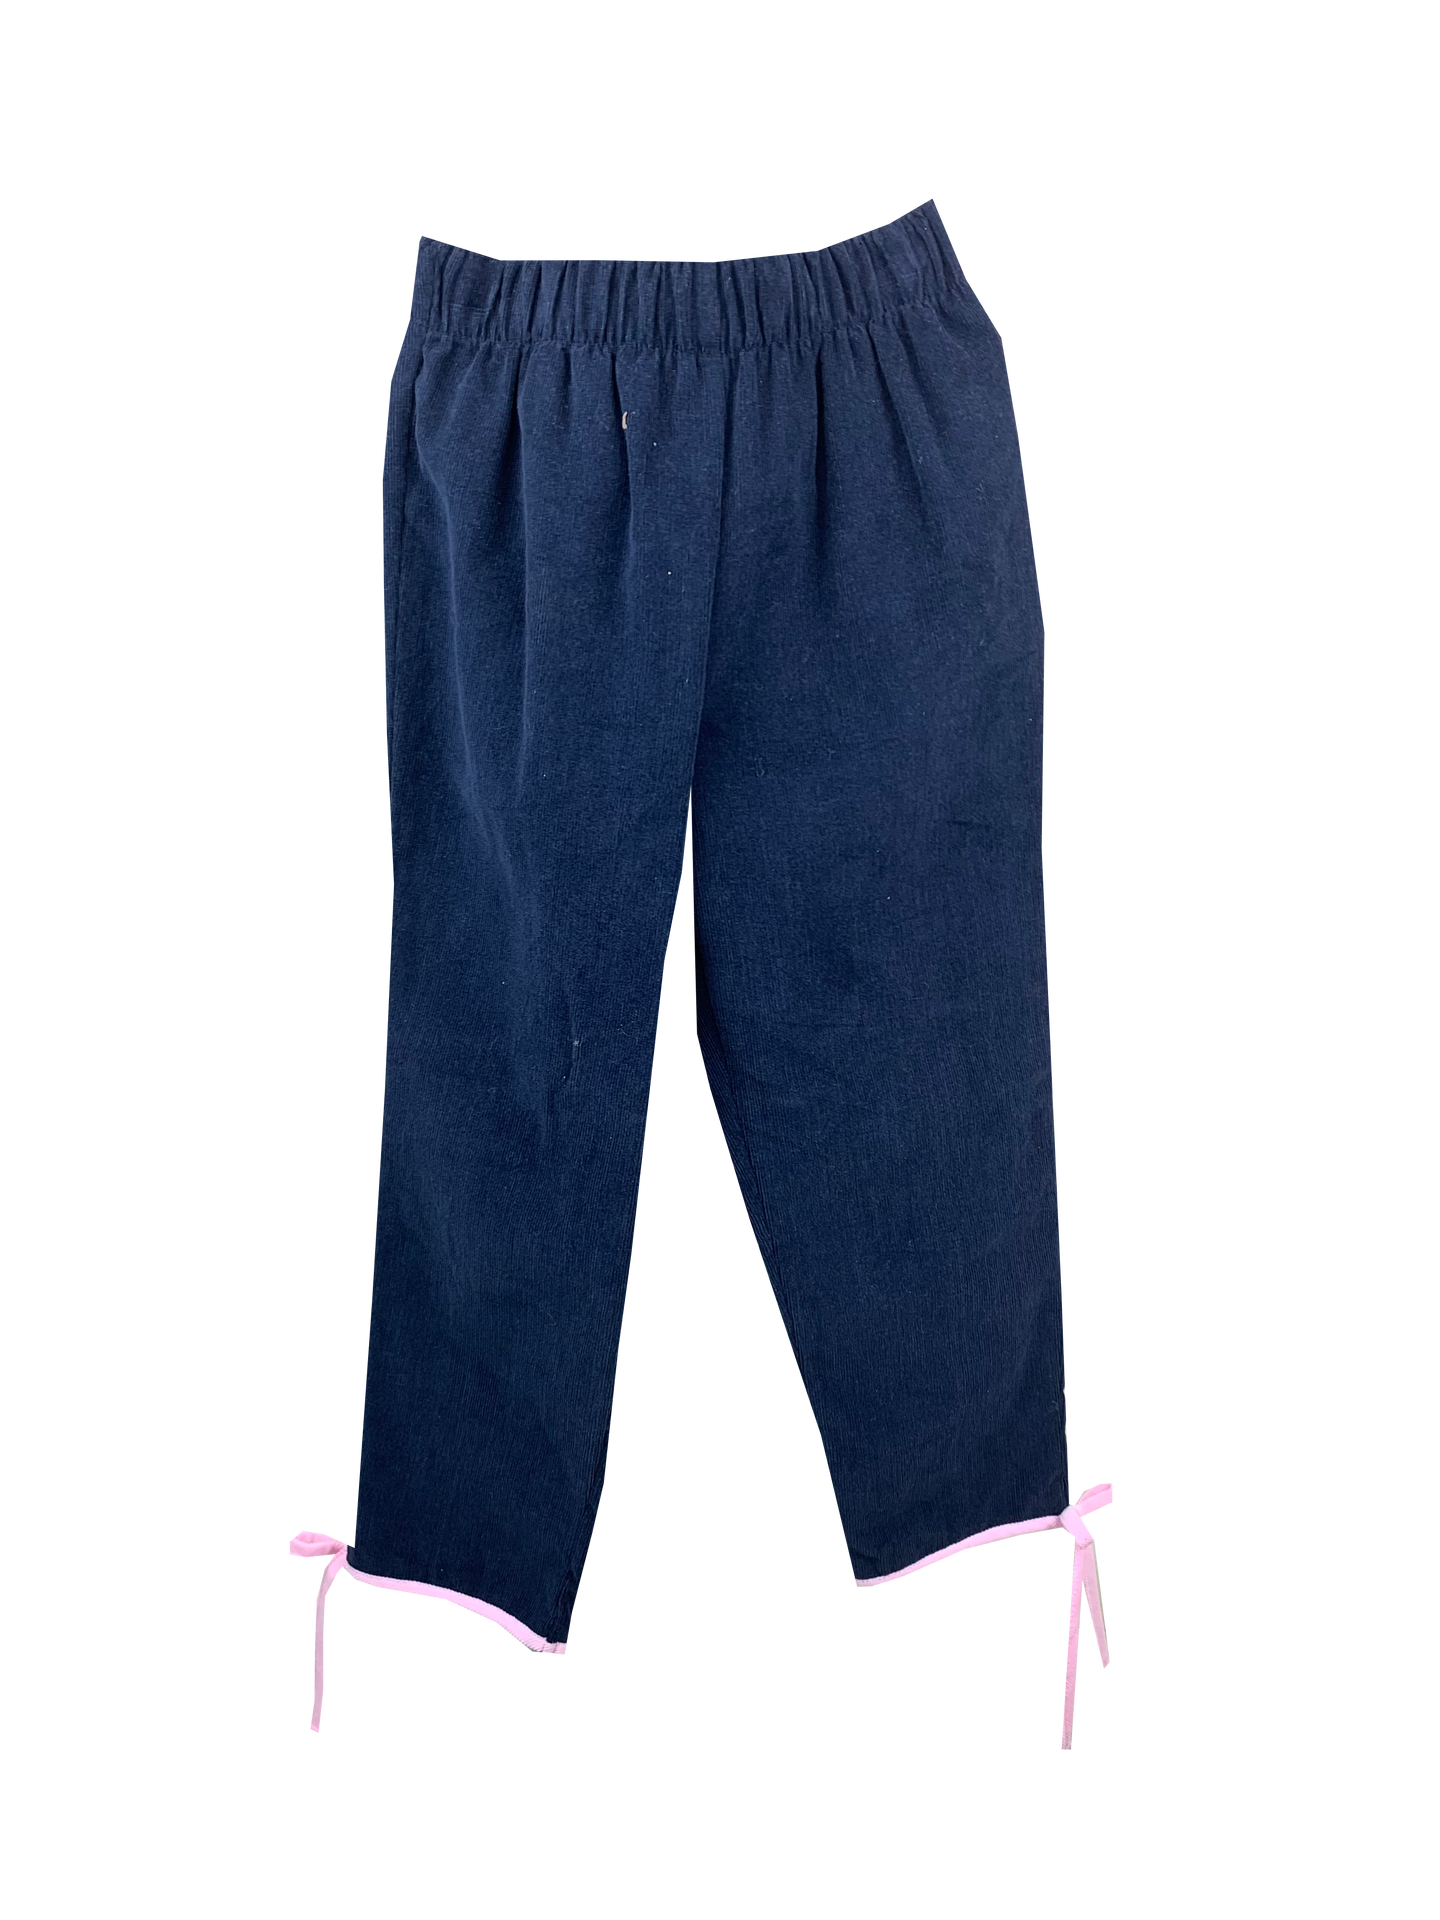 Navy Cord Pant w/ Pink Cord Tie